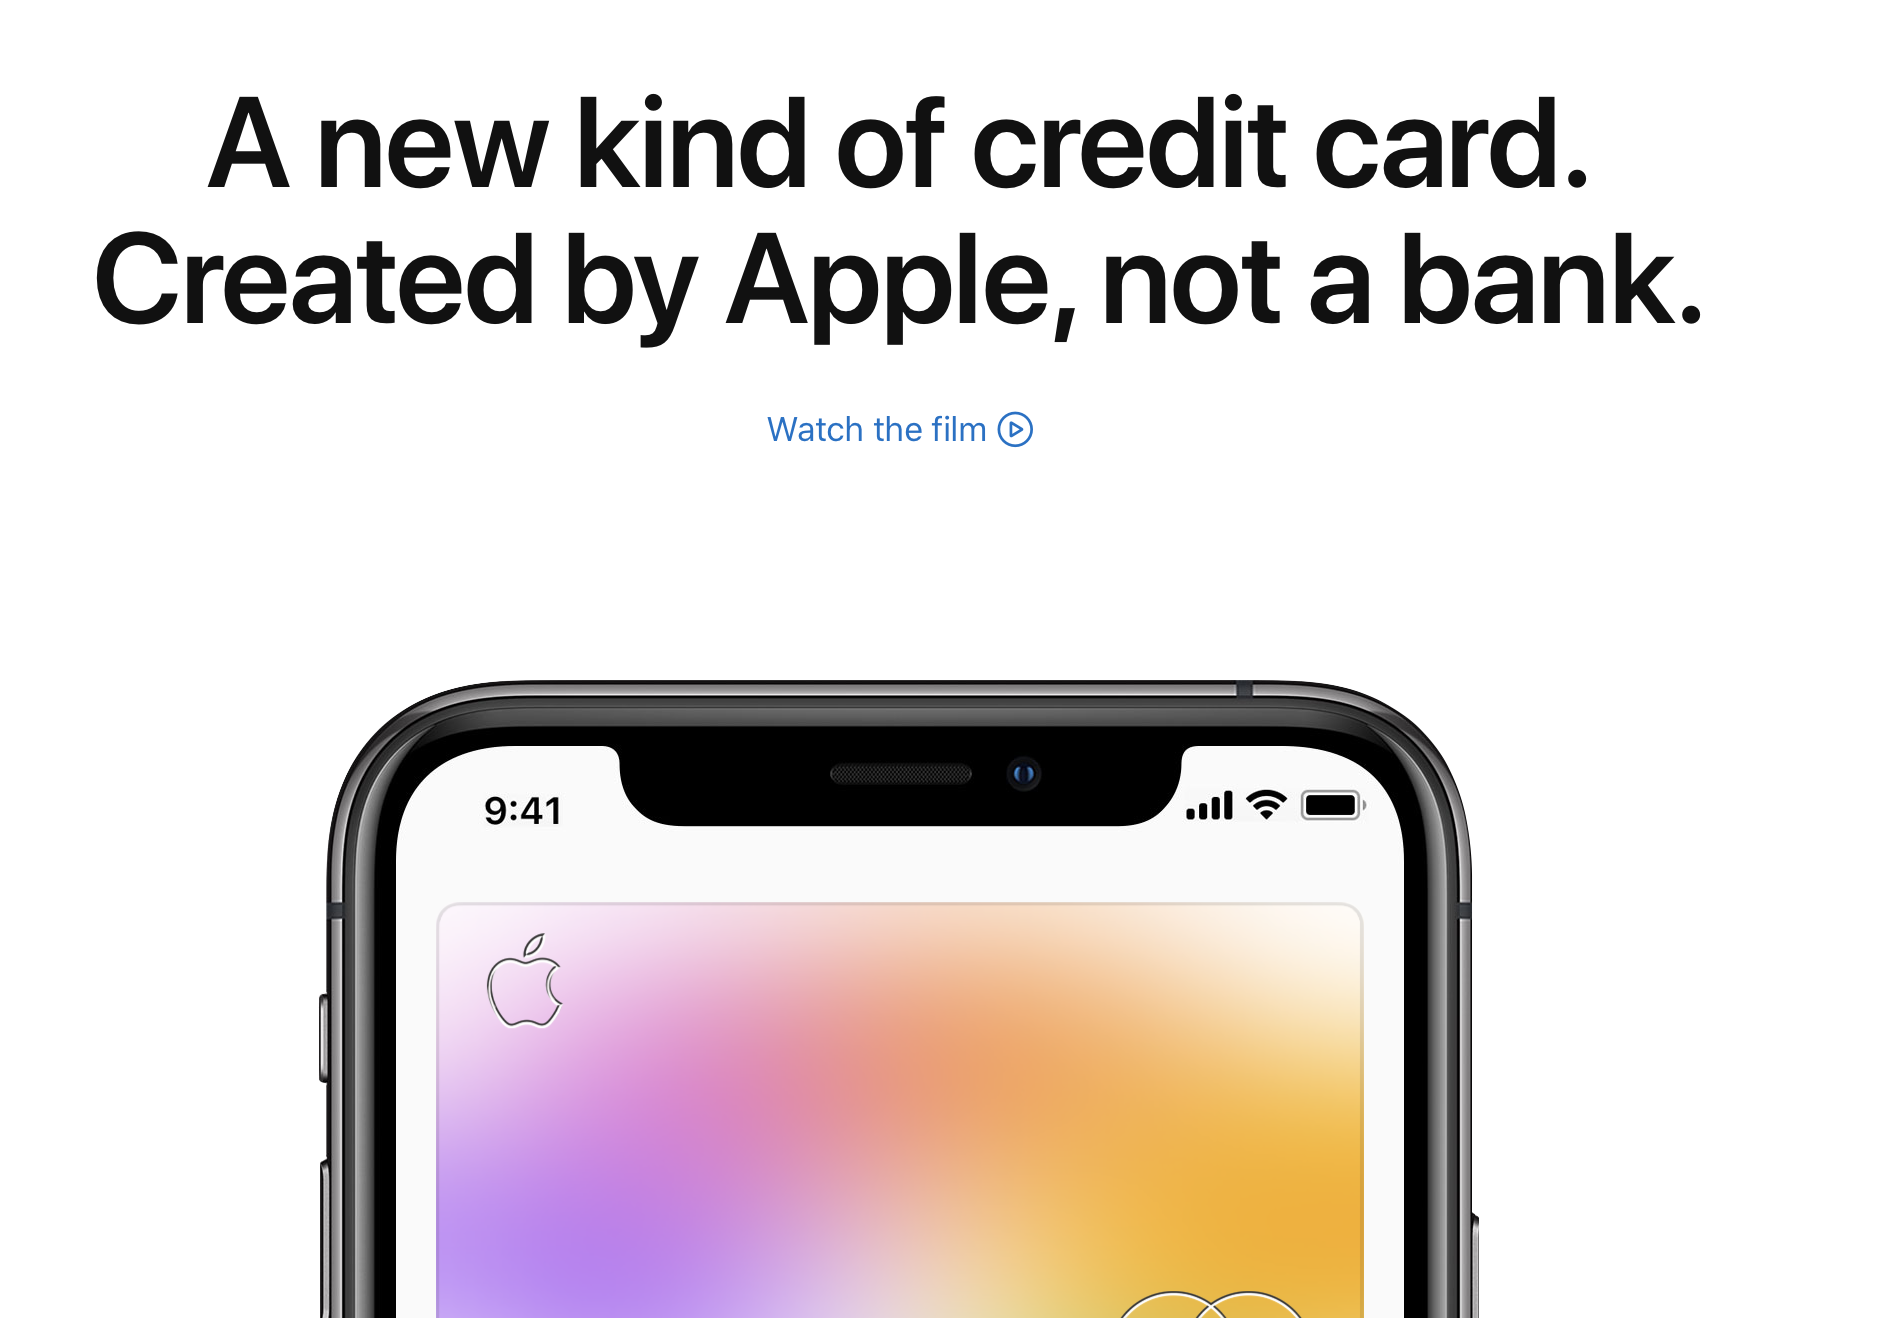 Apple's Strategy with Apple Card